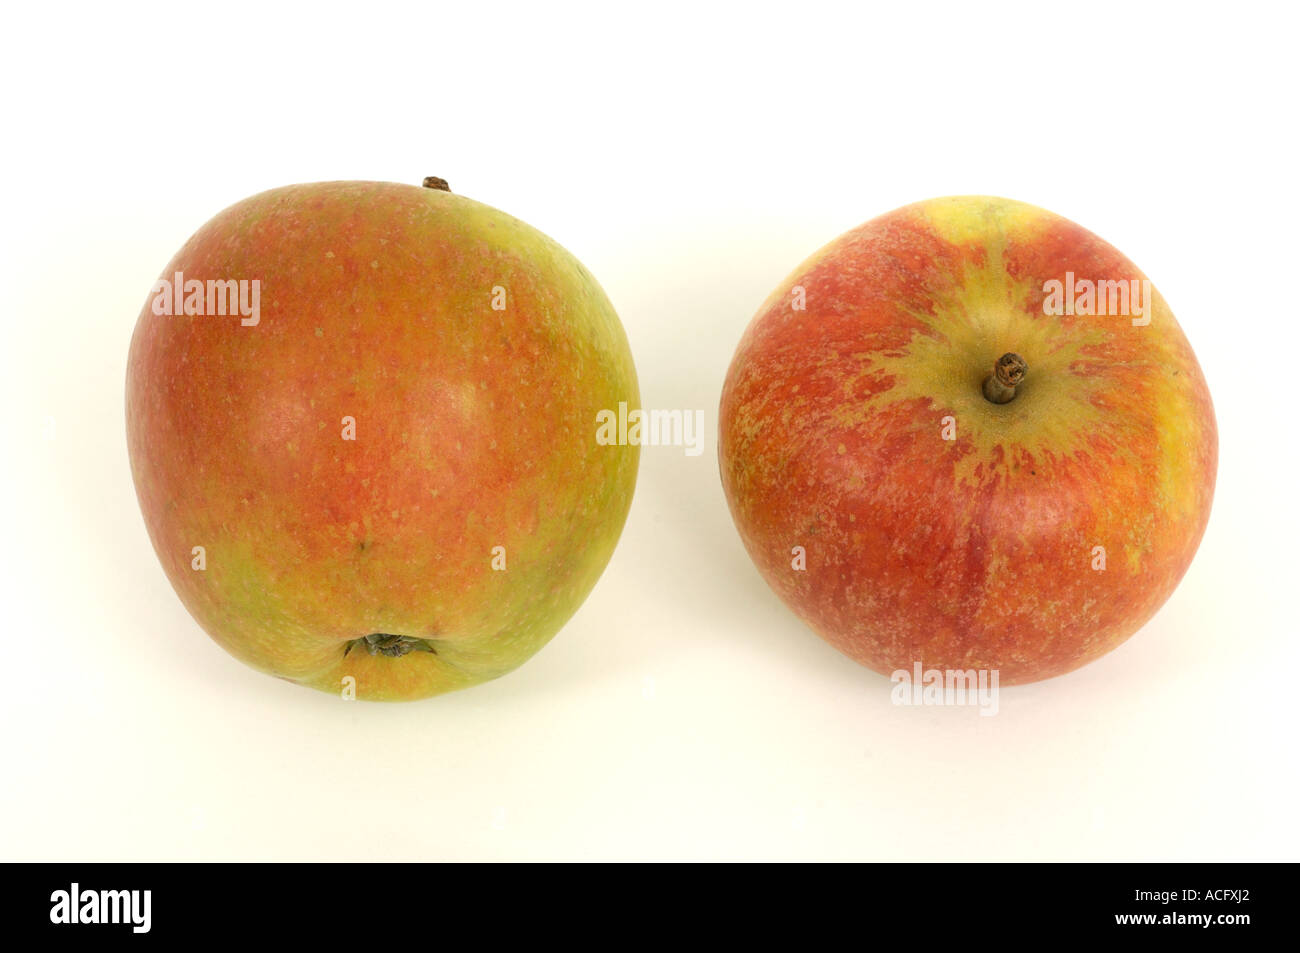 Fruit produce typical supermarket bought eating apples variety Cox - Stock Image